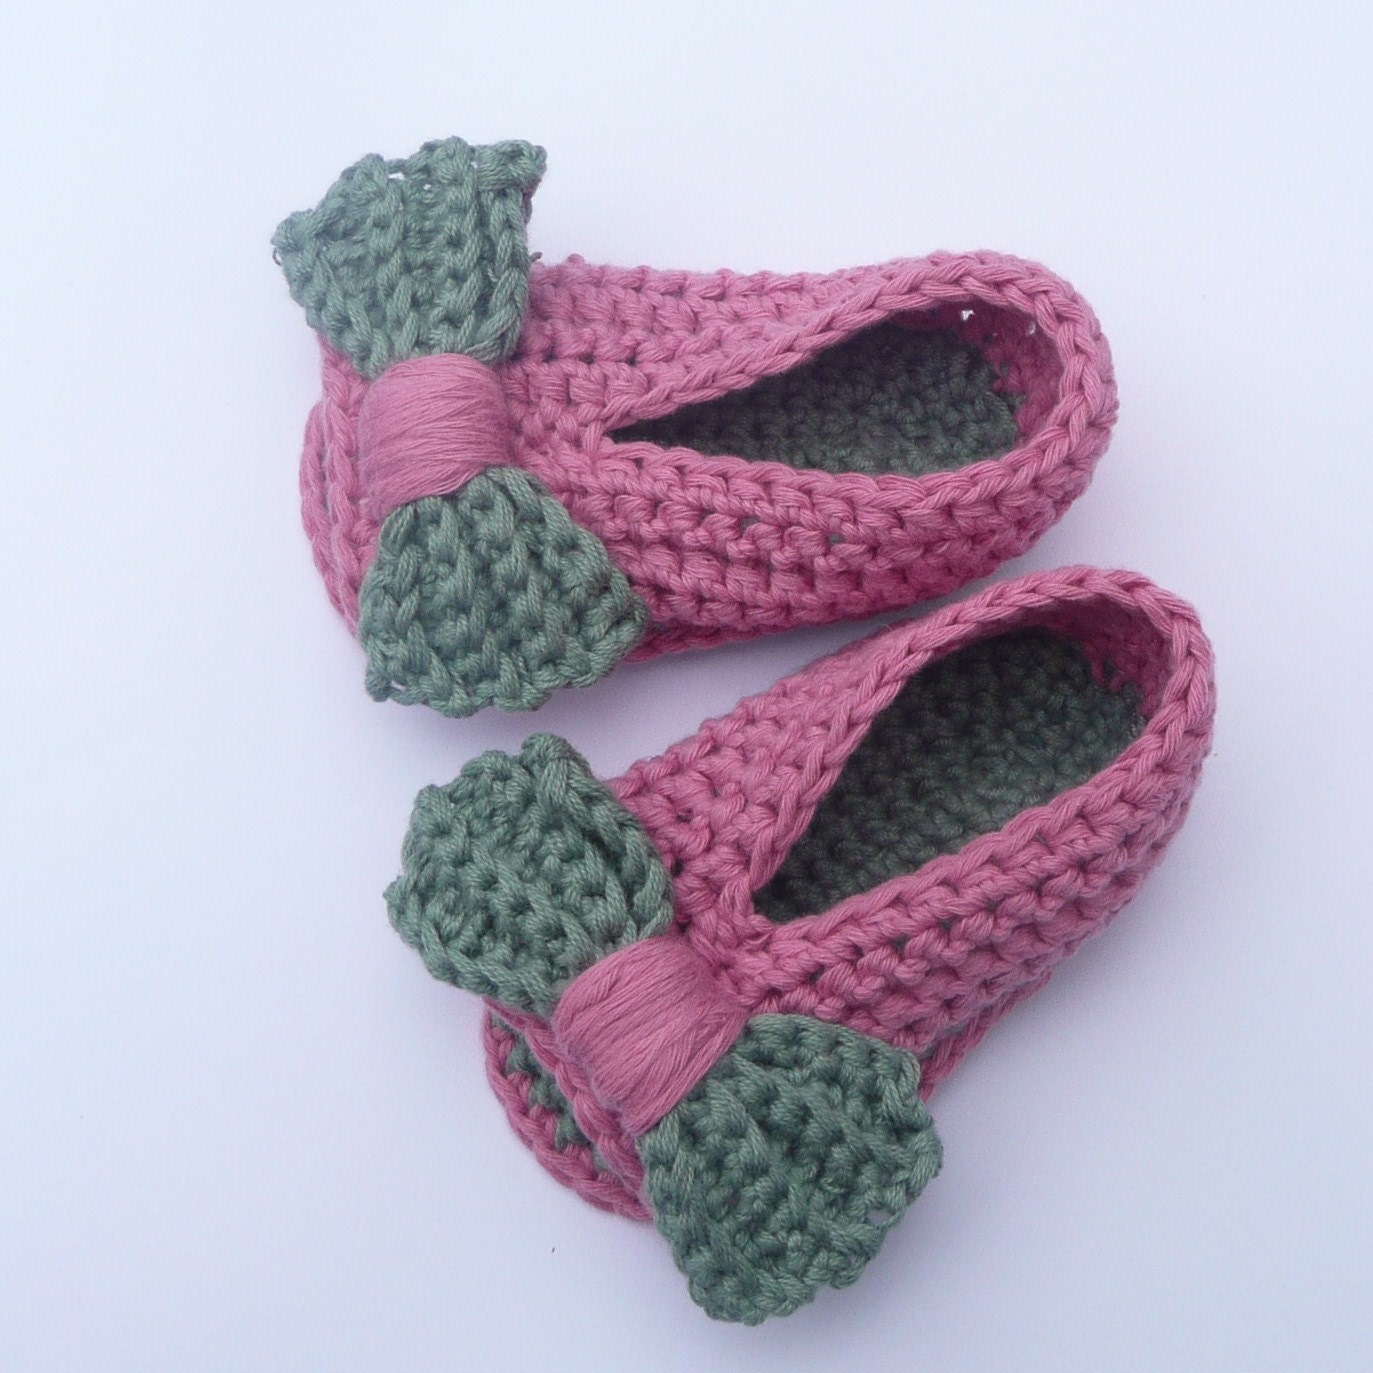 Crochet Baby Toe Sandals Free Pattern : BABY Sandals Crochet PATTERN Baby Bow Peeptoe by Keen2Crochet